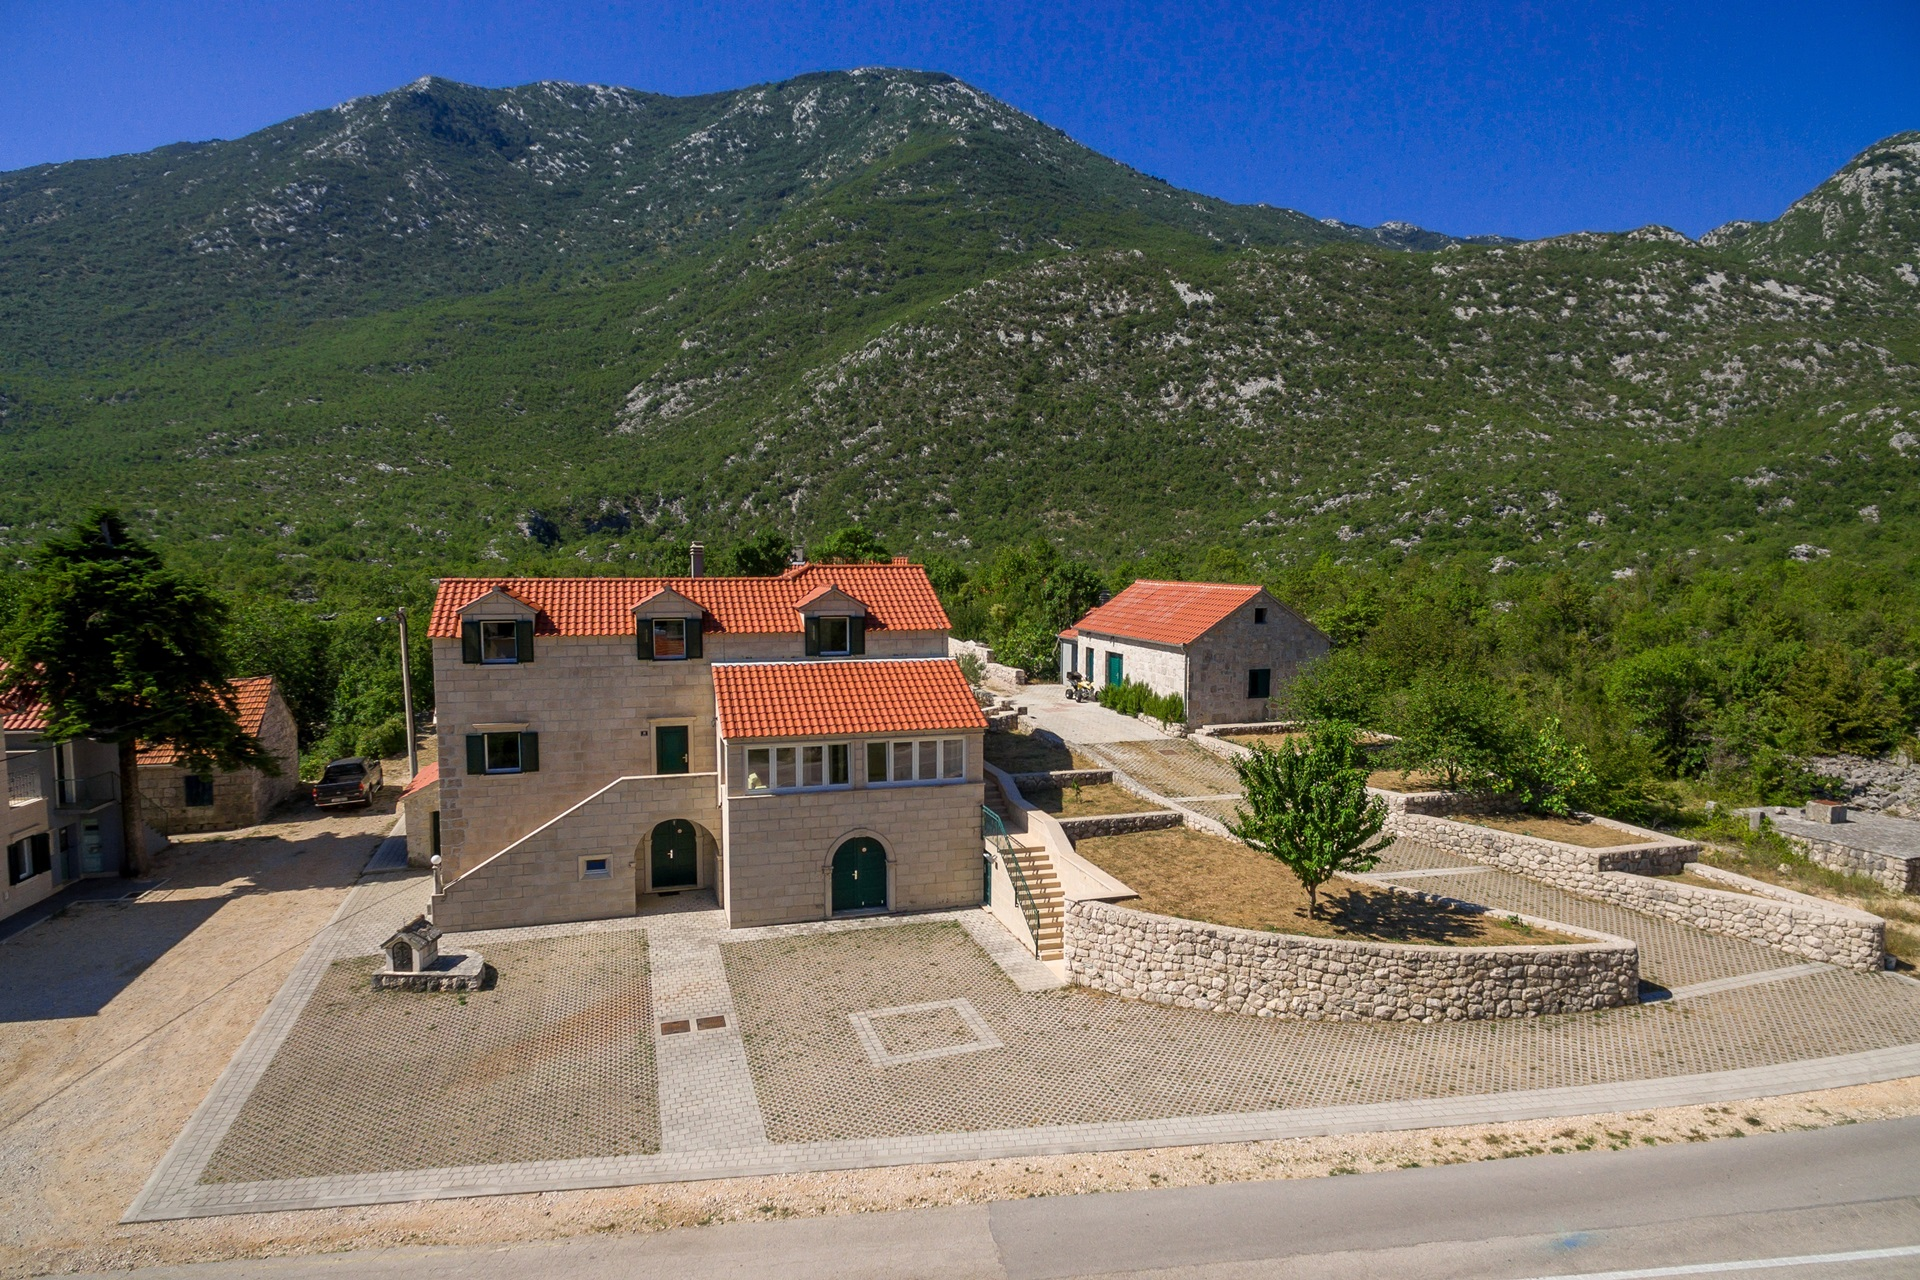 Drone view on the Villa Roglic and its property